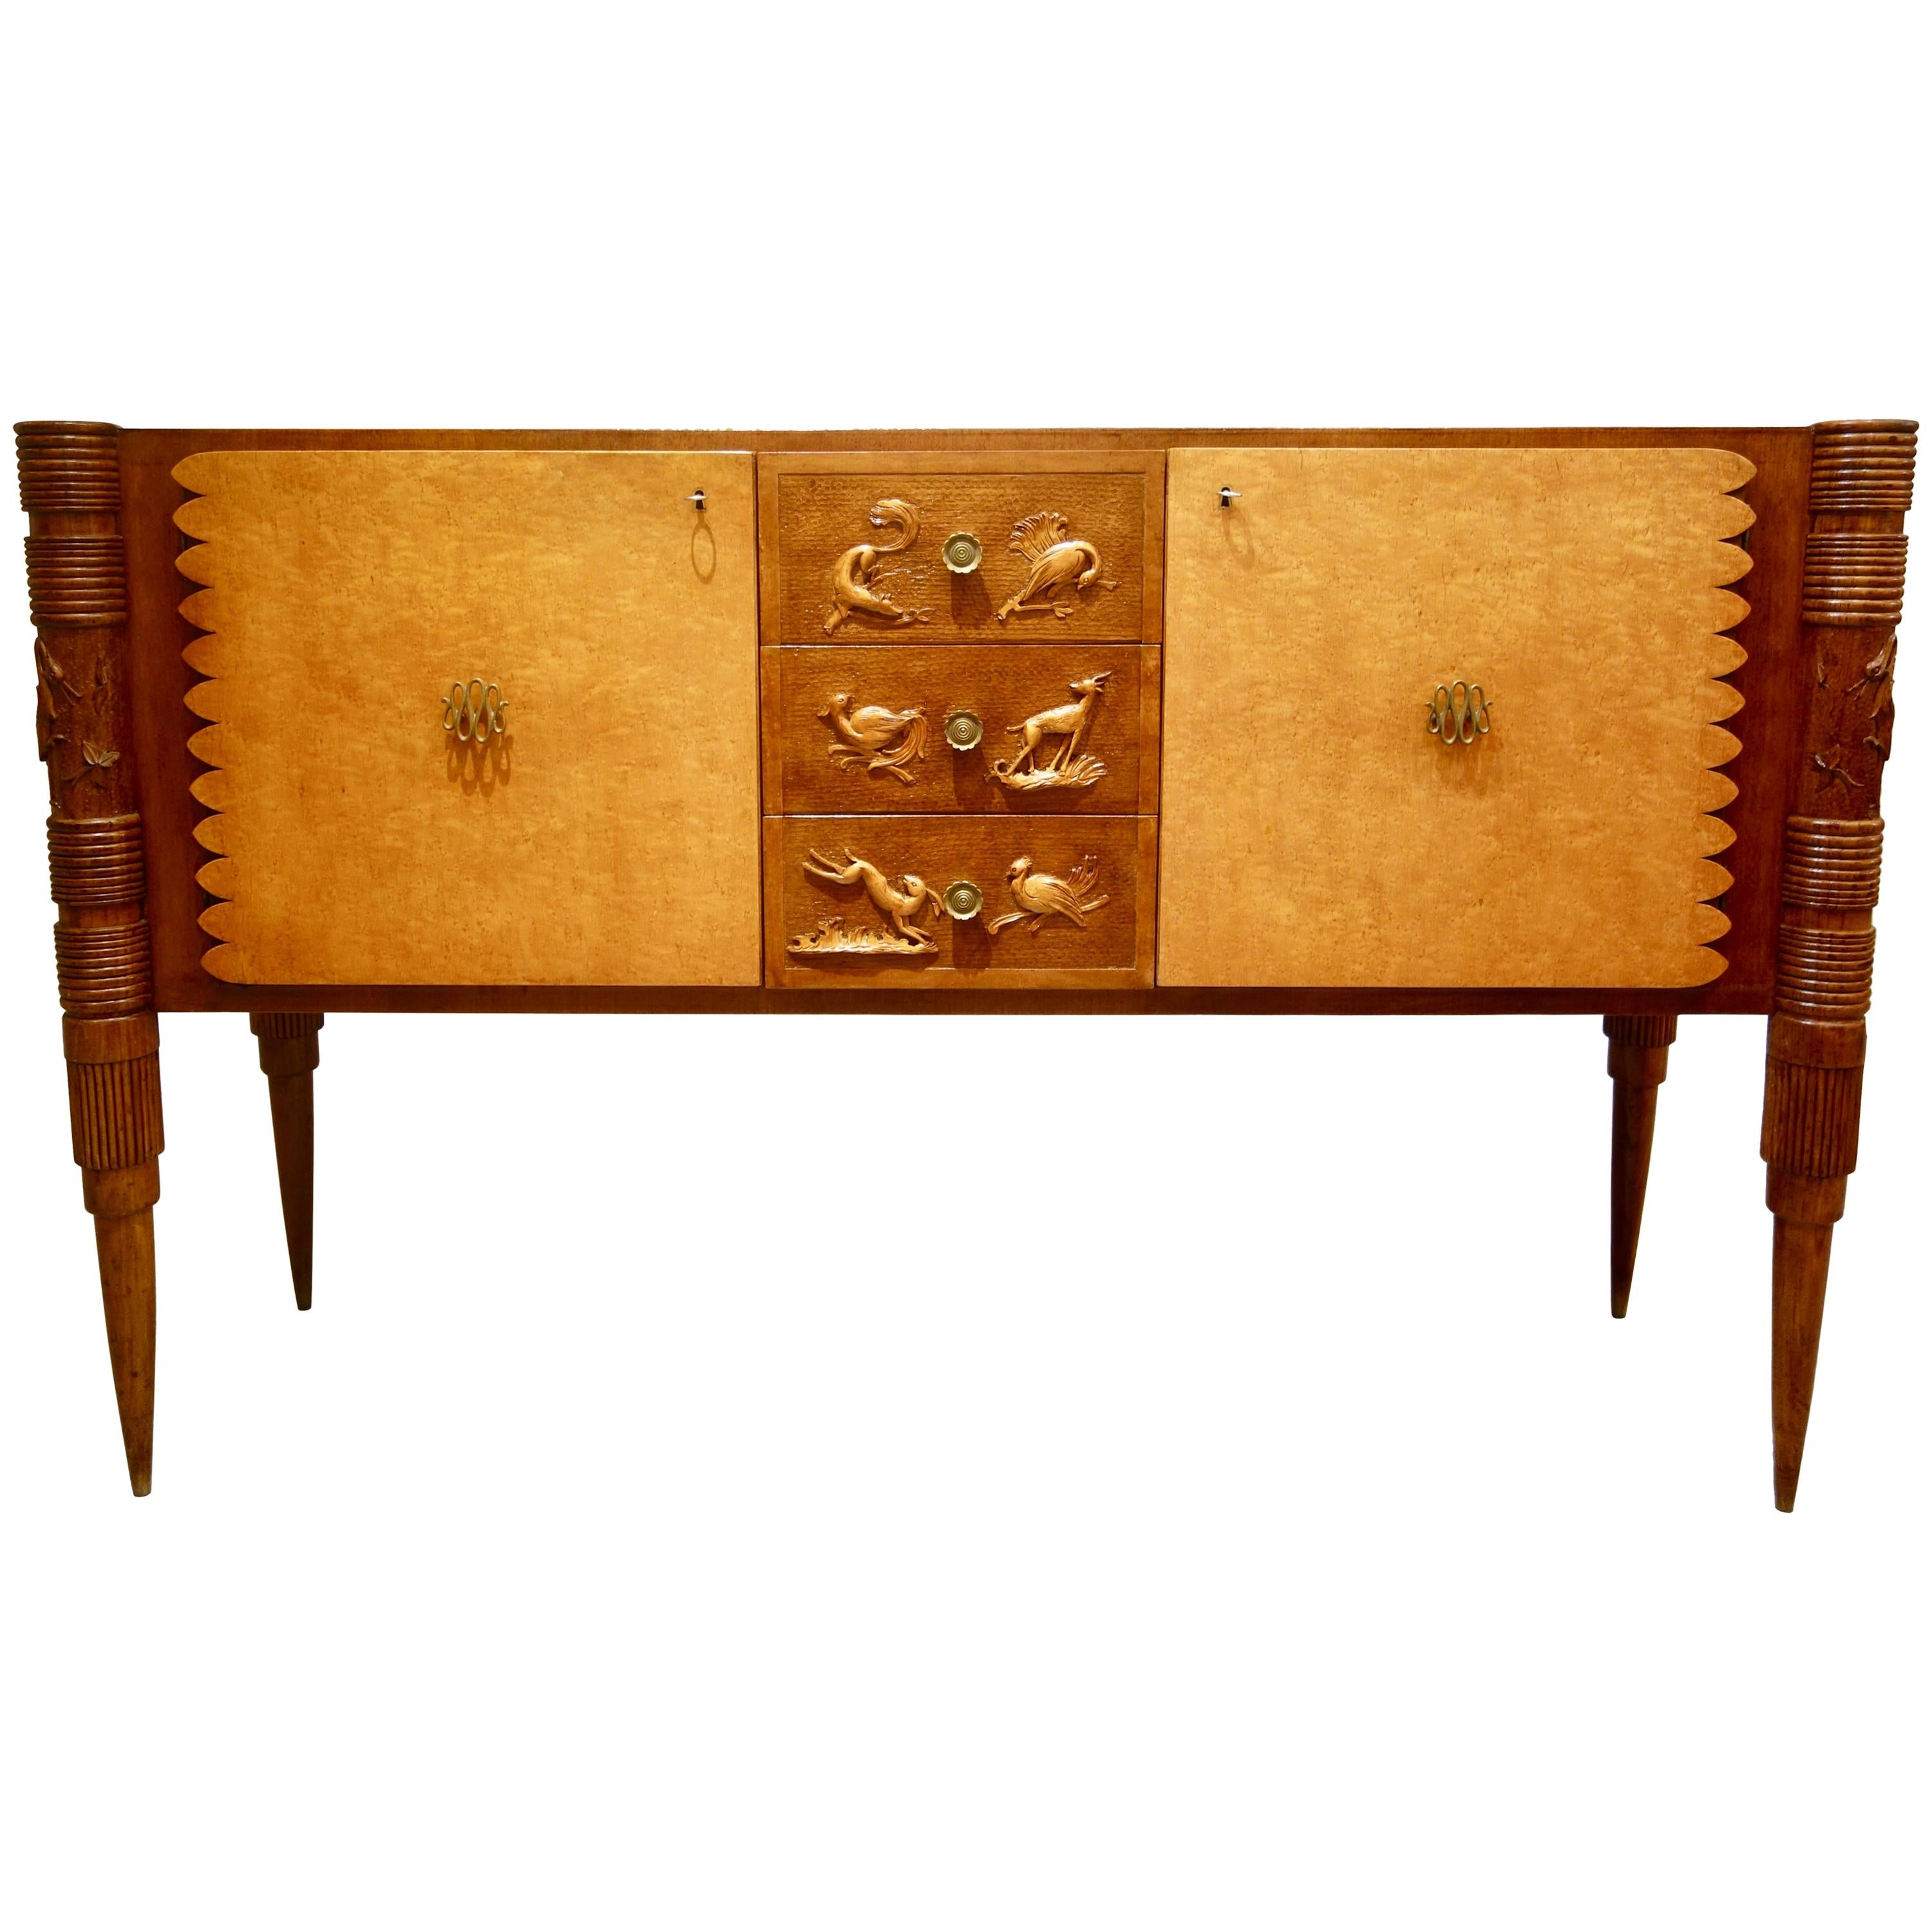 Italian Carved Two-Tone Wood Sideboard or Credenza by Pier Luigi Colli